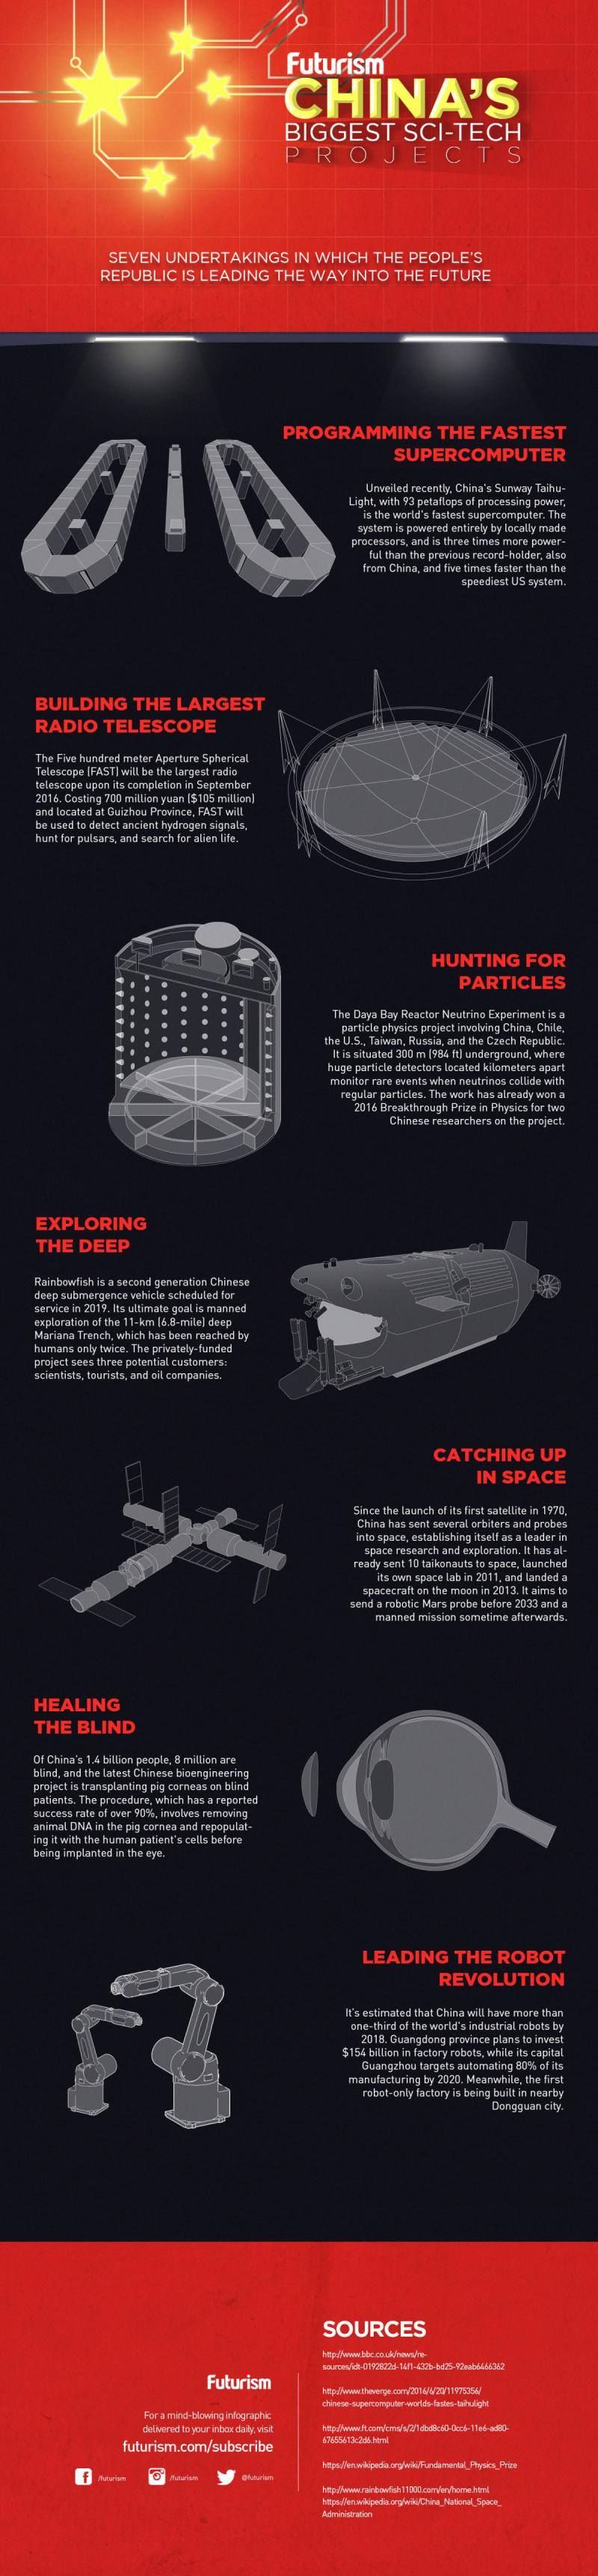 Biggest #Technology projects in #China #Infographic